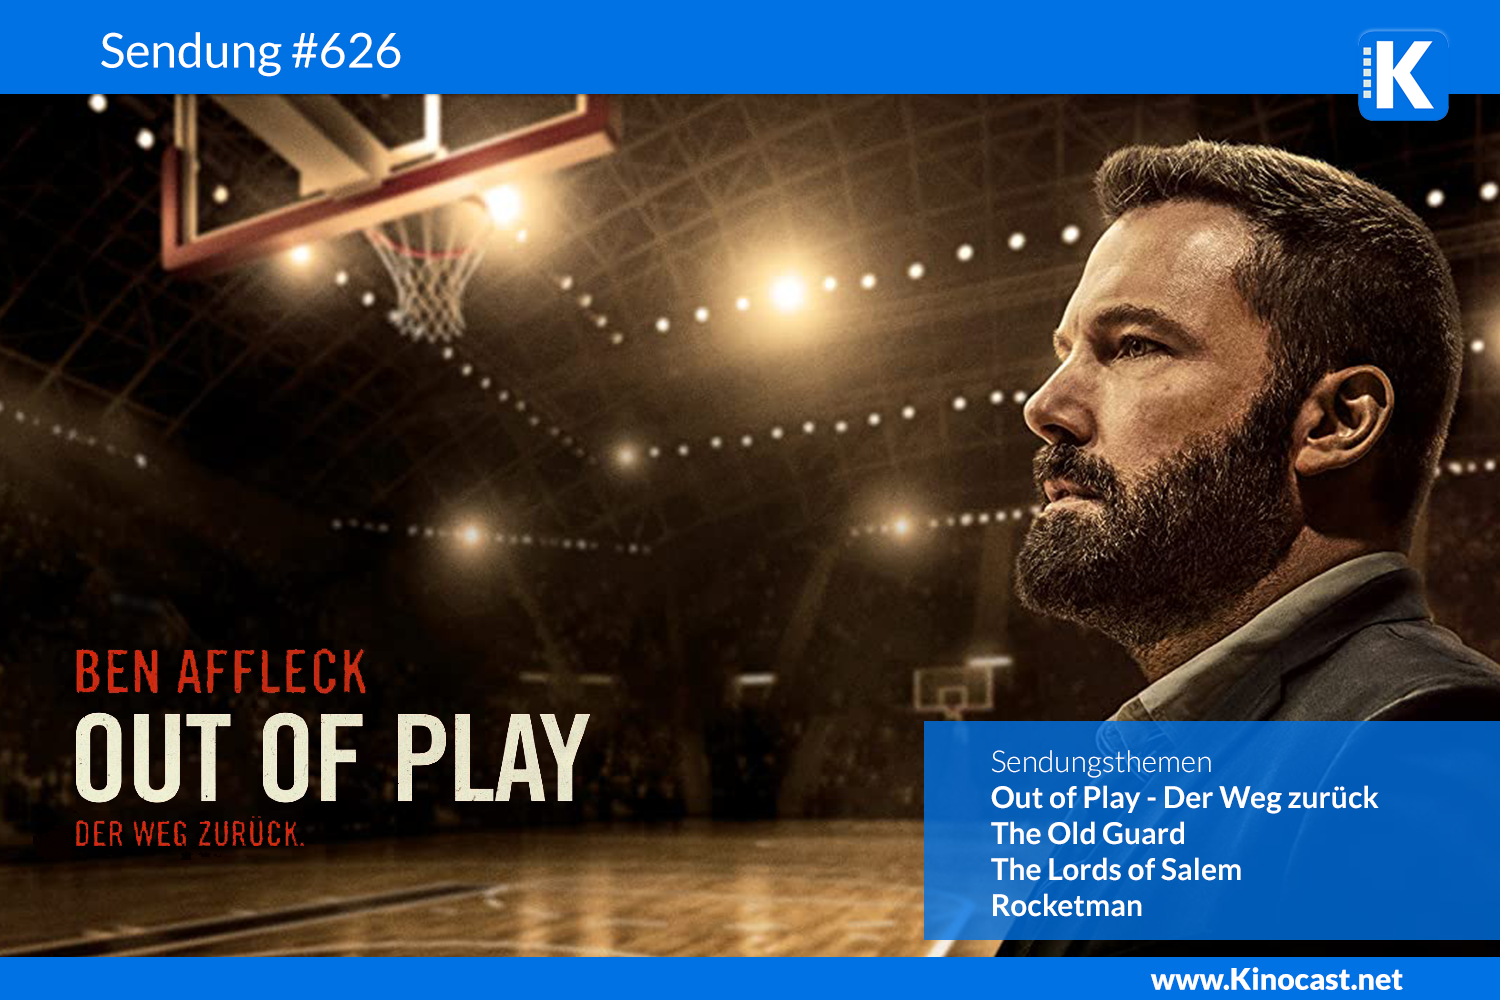 Out of Play Der Weg zurück The Way Back The Old Guard Netflix Download film german deutsch Podcast